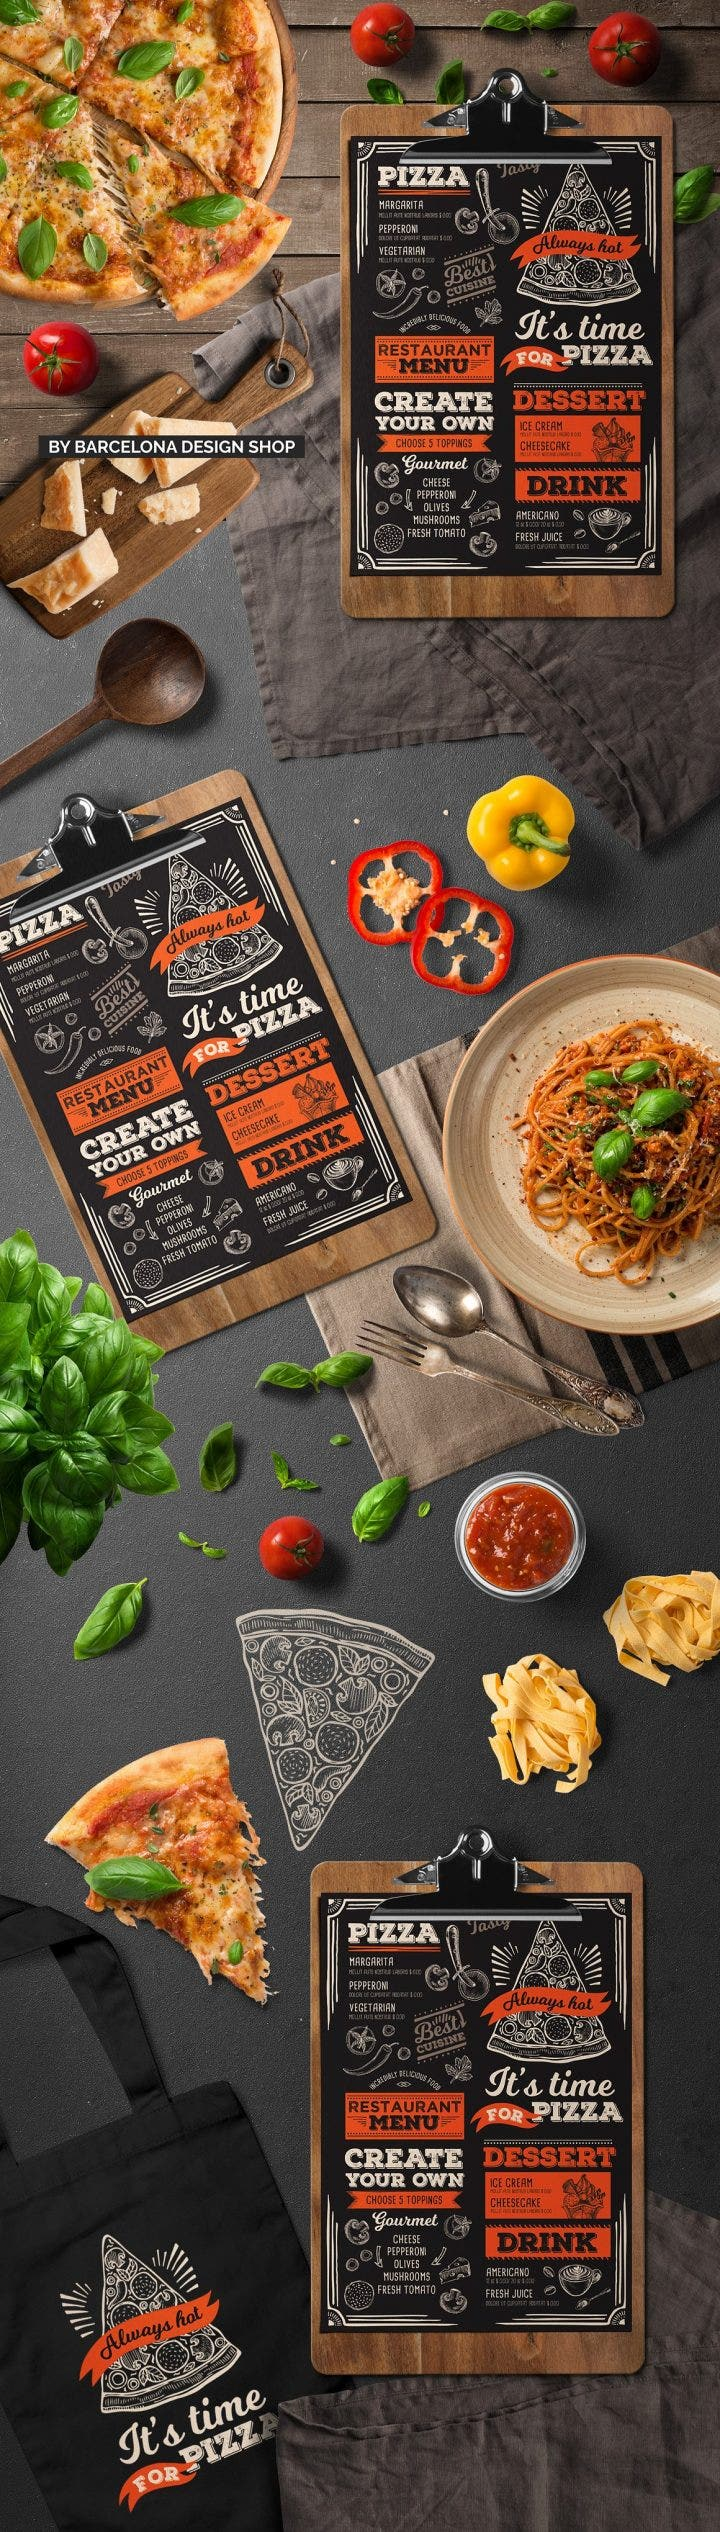 pizza-food-menu-template-restaurant-italian